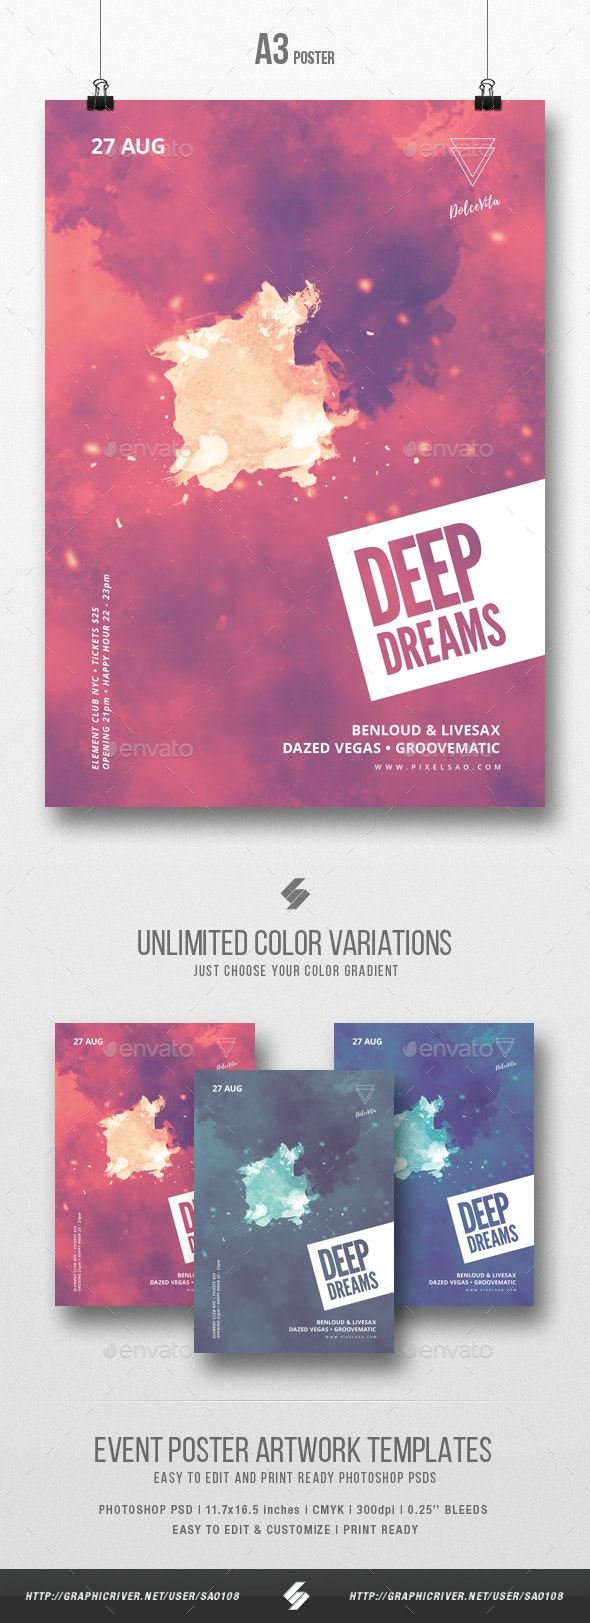 Deep Dreams - Minimal Party Flyer / Poster Template A3 - Clubs & Parties Events